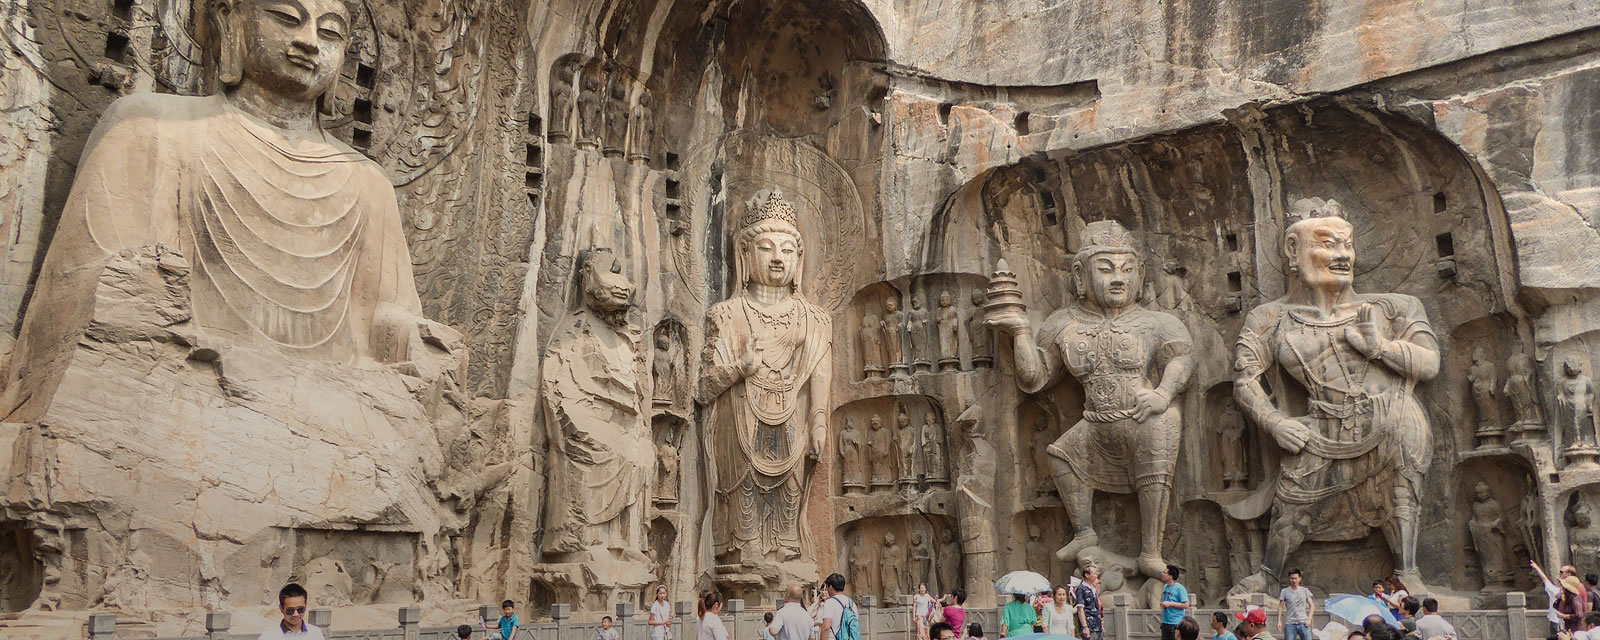 Longmen Caves with giant Buddhist sculptures near Luoyang